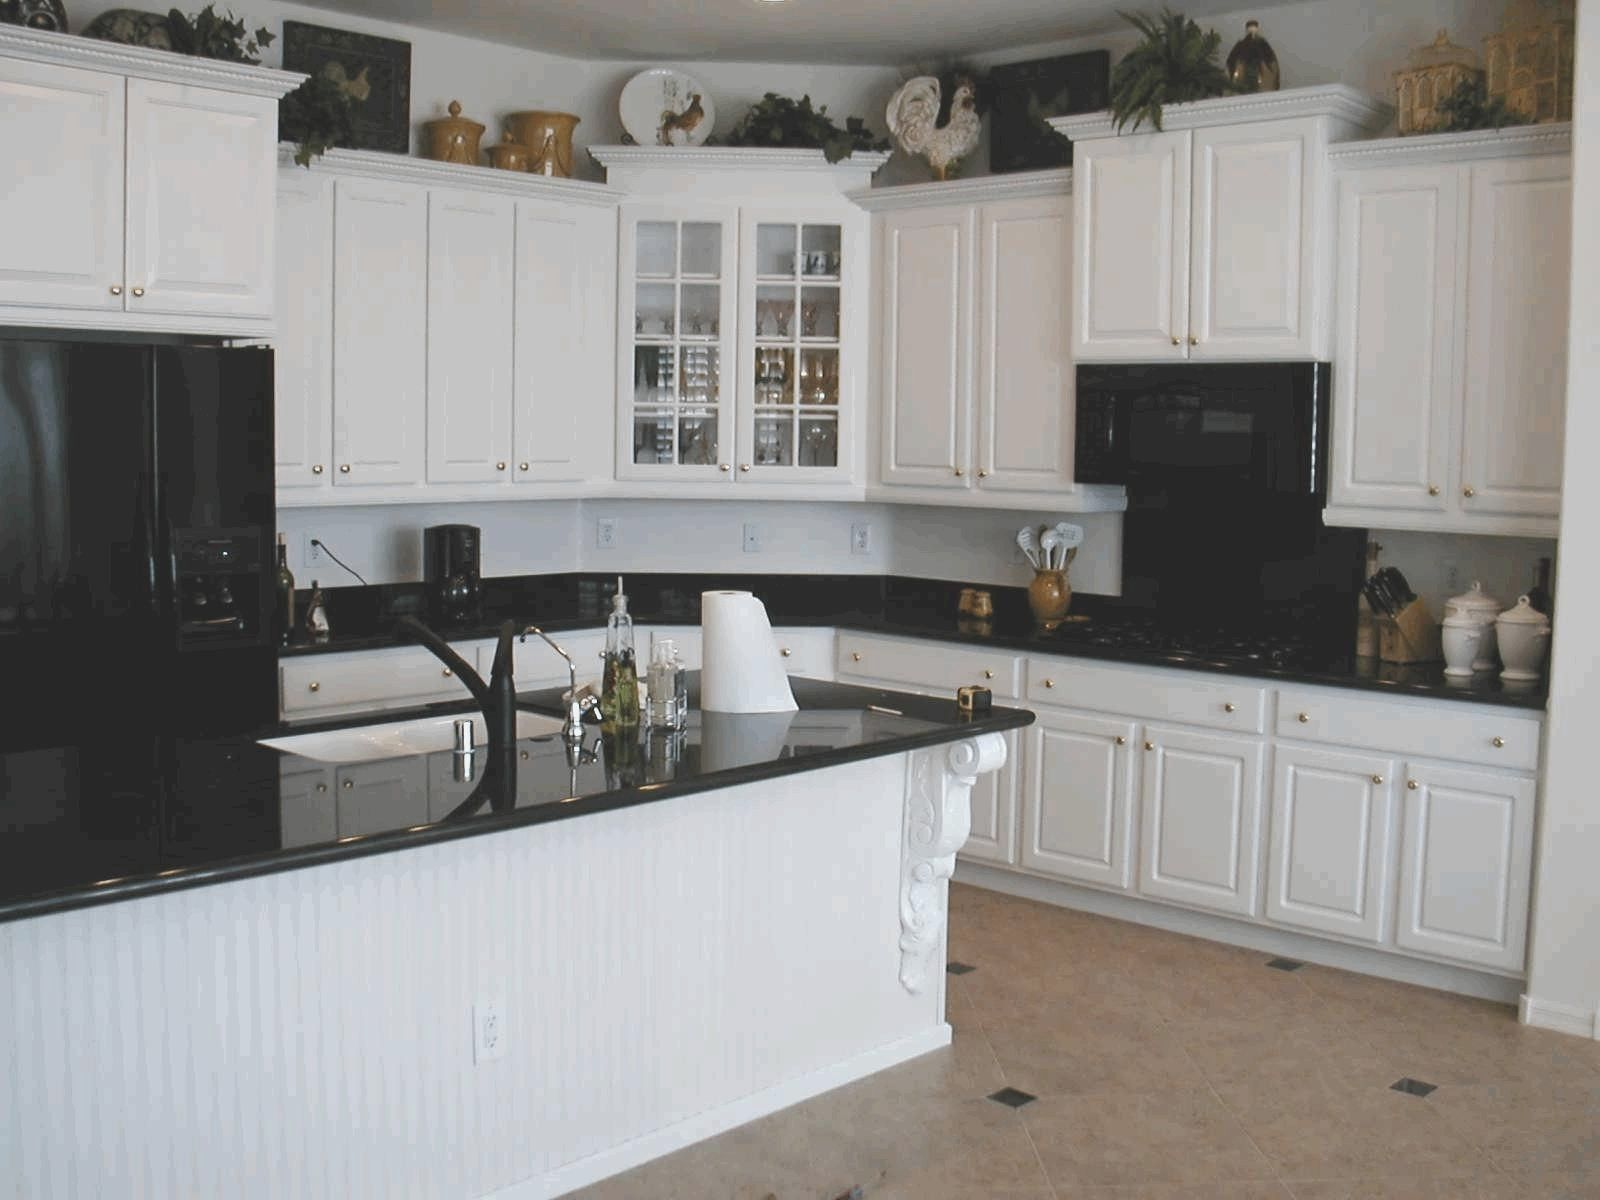 Home depot stock kitchen cabinets home depot kitchen cabinets home depot kitchen cabinets american woodmark home depot kitchen cabinets and islands